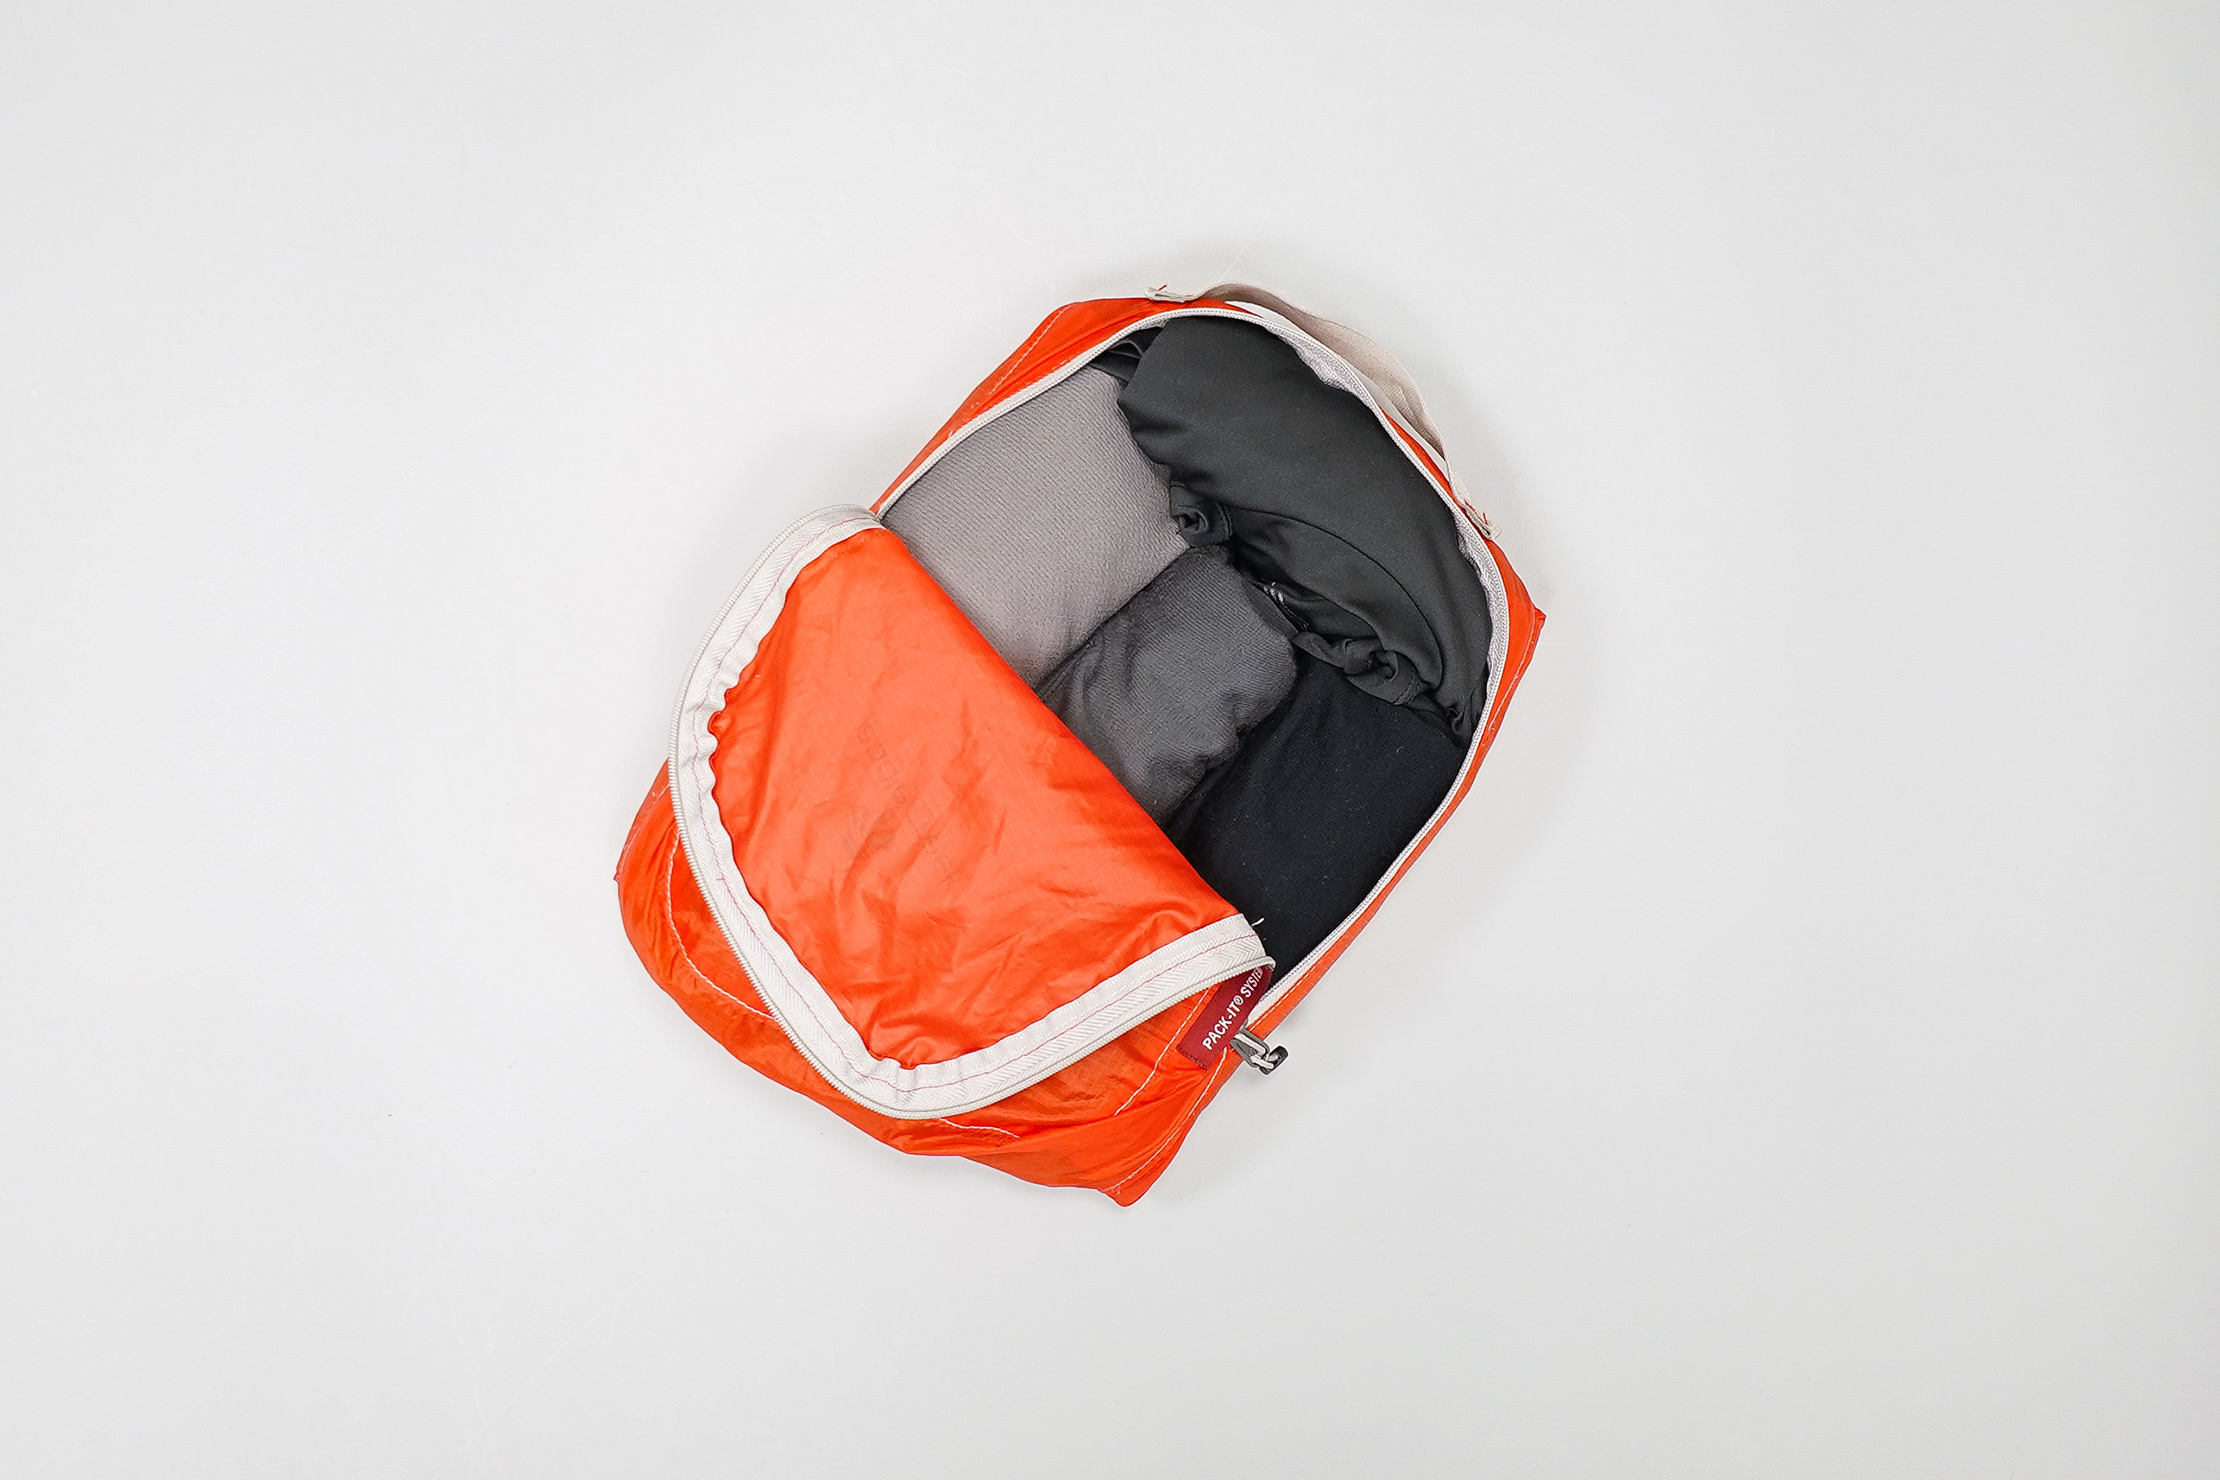 How To Pack a Carry-on Tops in a Packing Cube